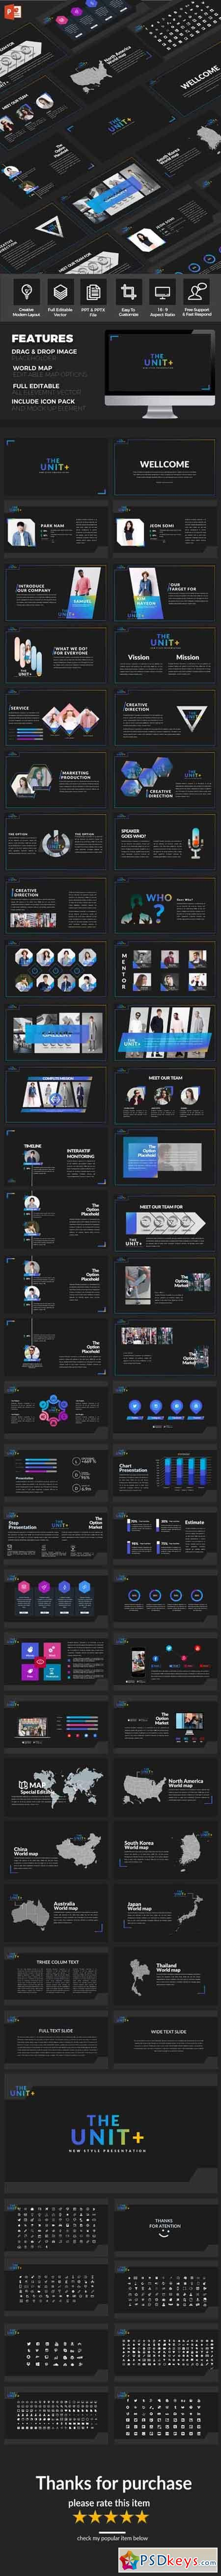 The Unit - Multipurpose PowerPoint Template 21037533